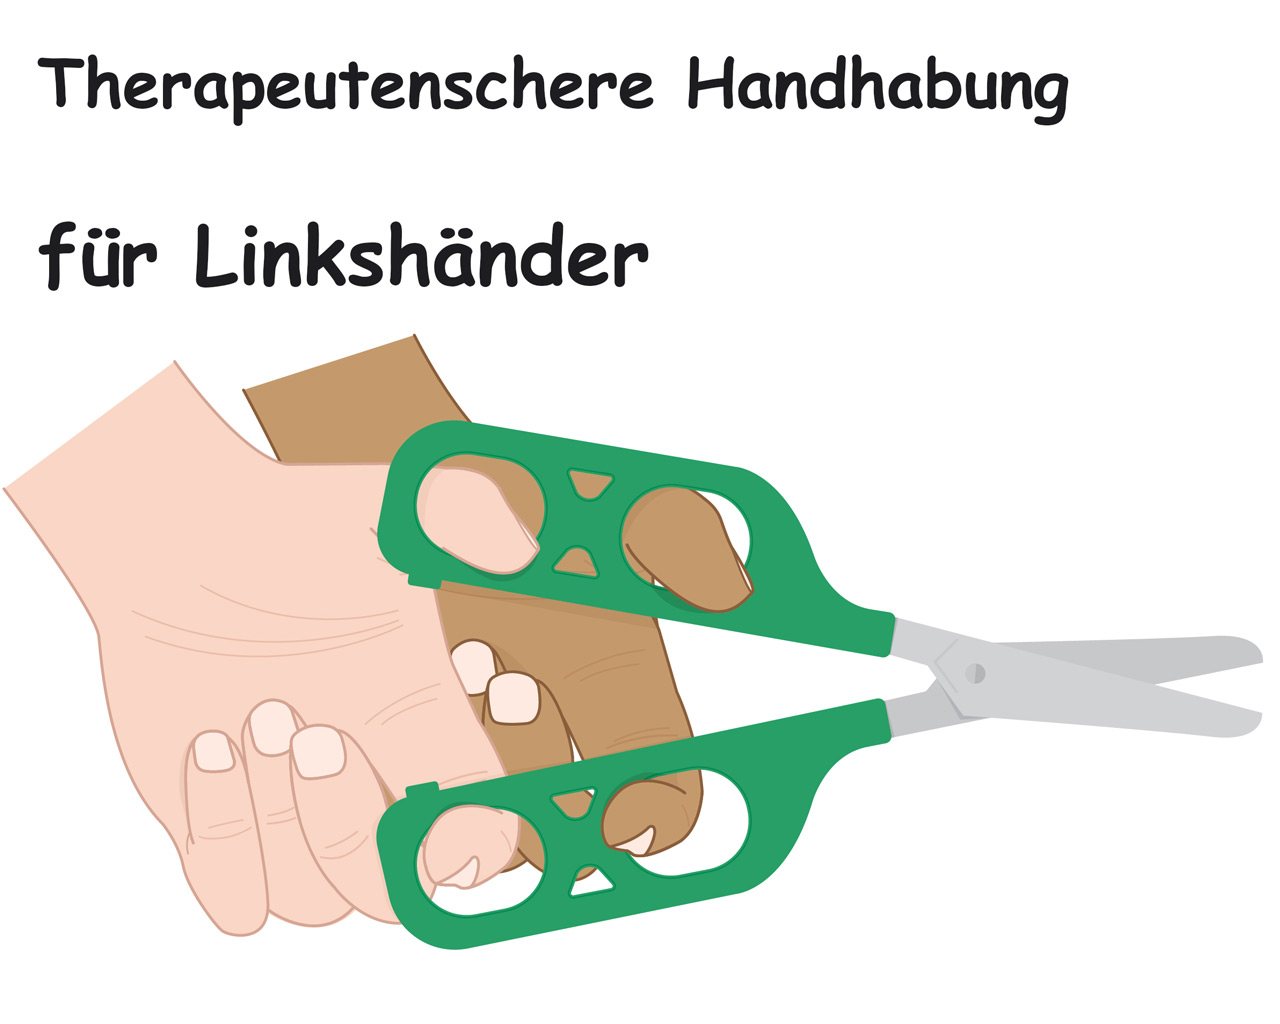 Therapeutenschere-Handhabung-fuer-Linkshaender-illustration-PETA-lafueliki